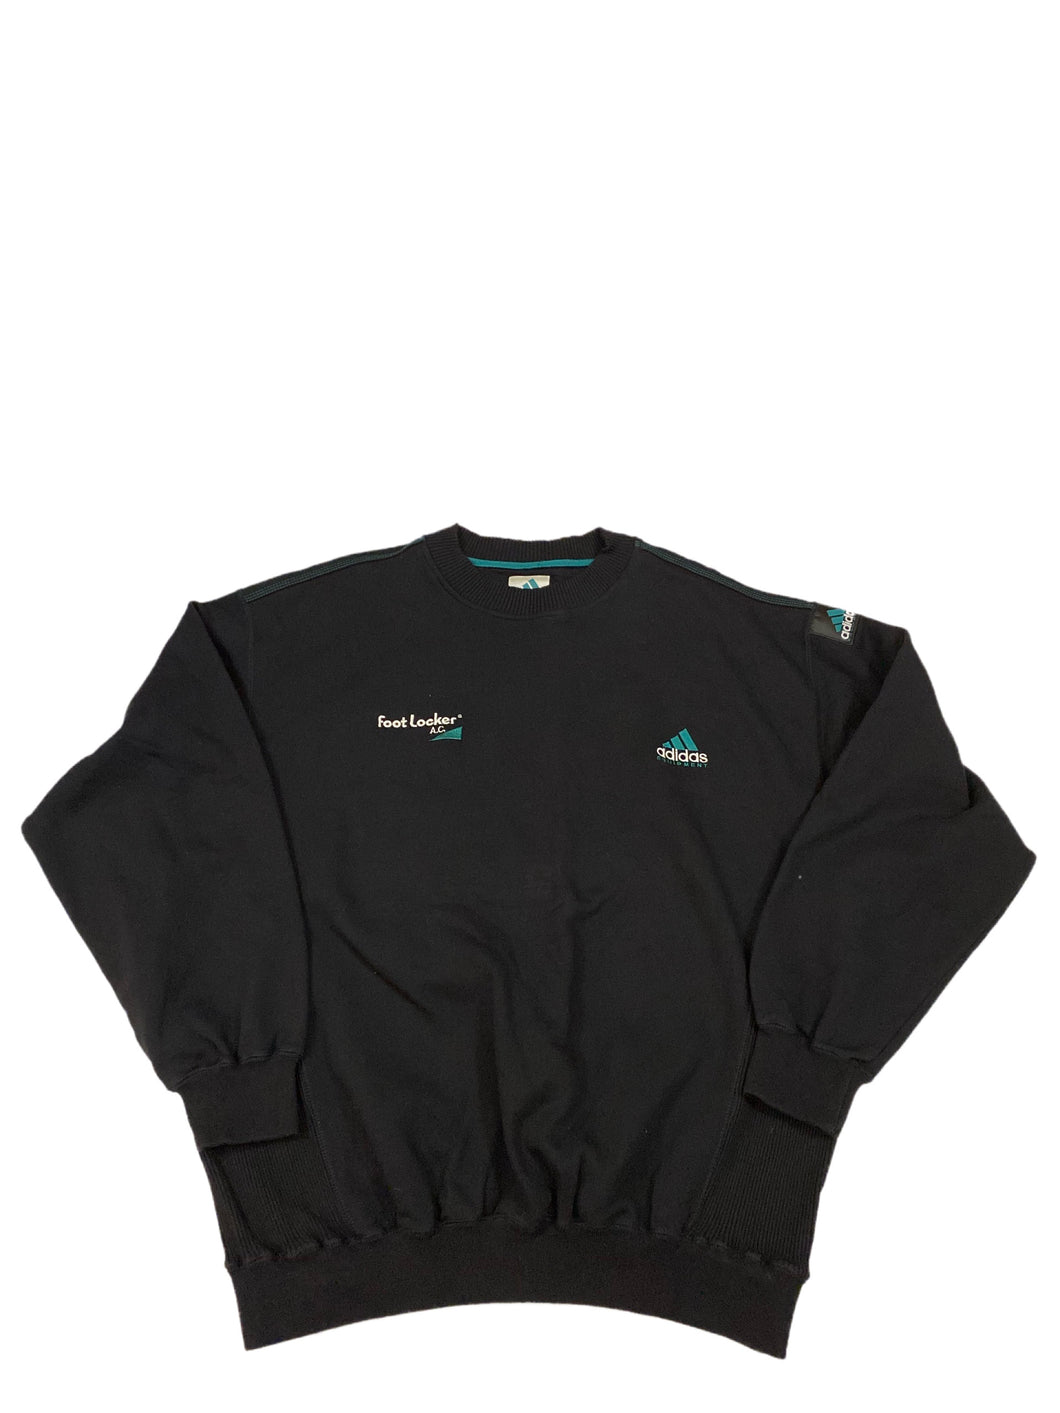 Adidas Equipment Footlocker Staff Crewneck